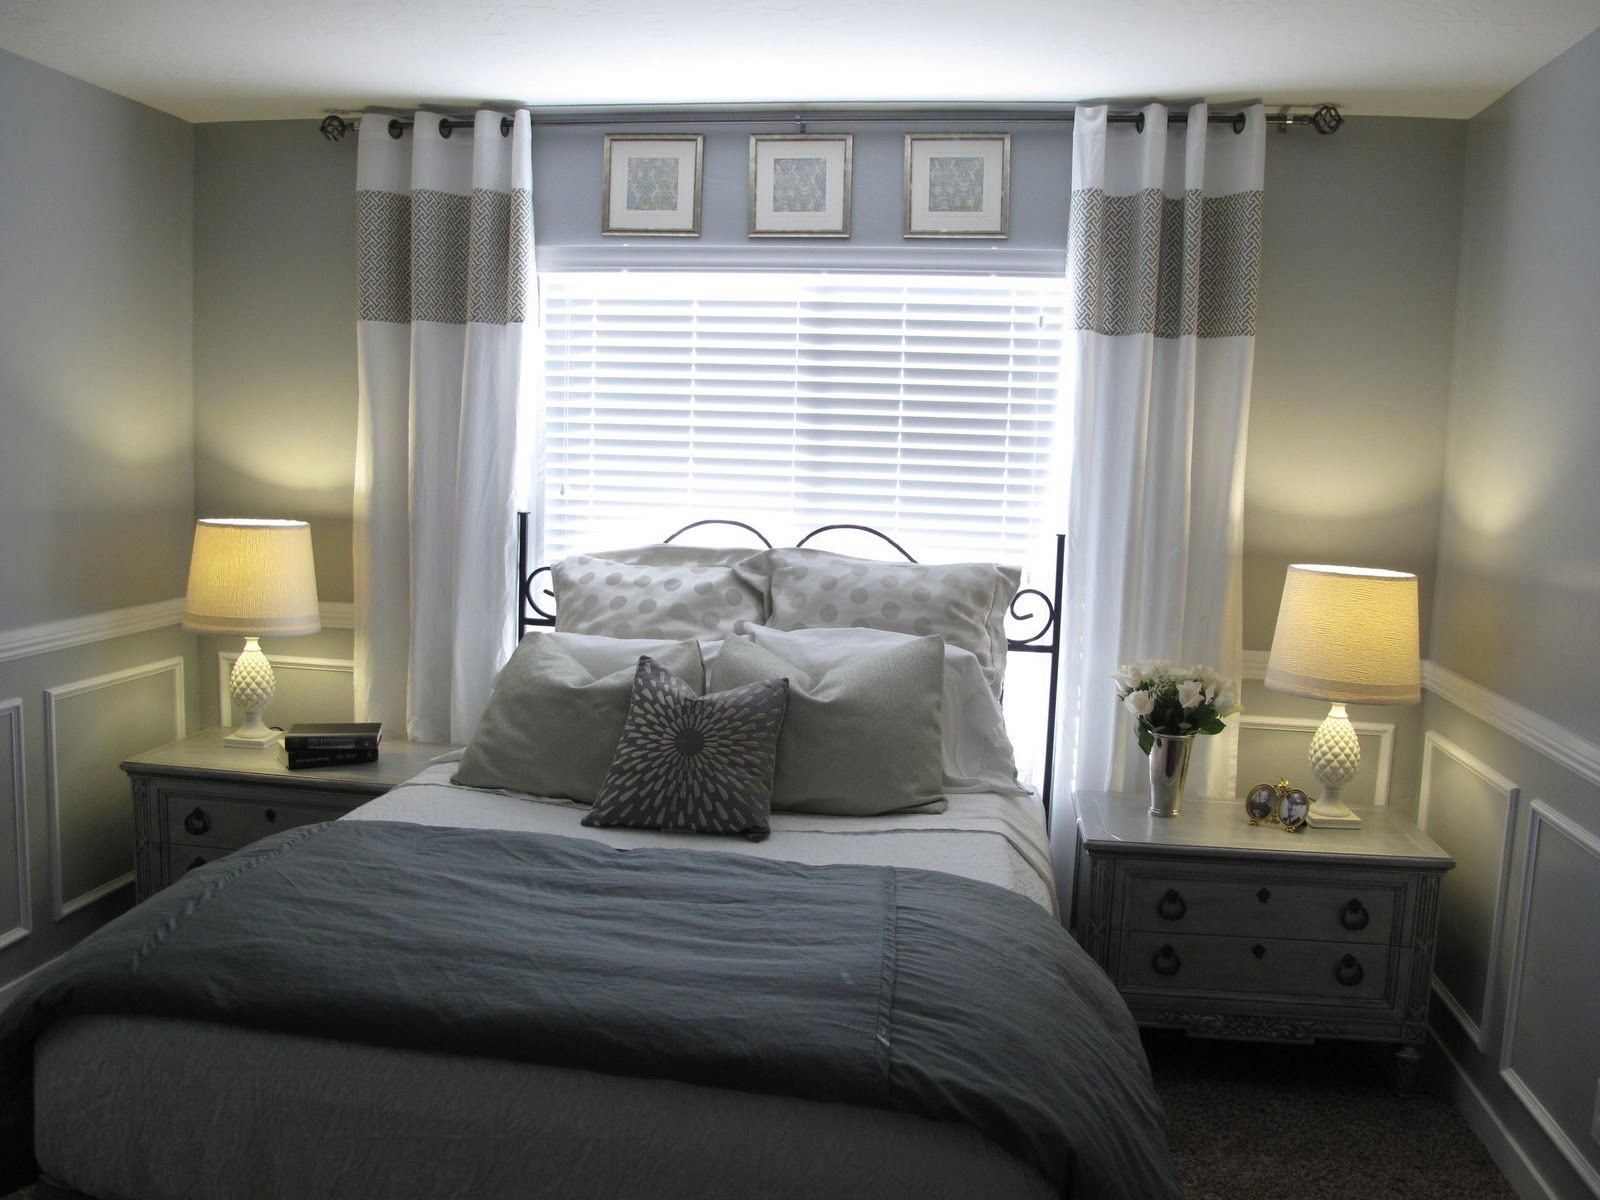 Best Pretty Small Master Bedroom Decorating Ideas Remodel 640 x 480